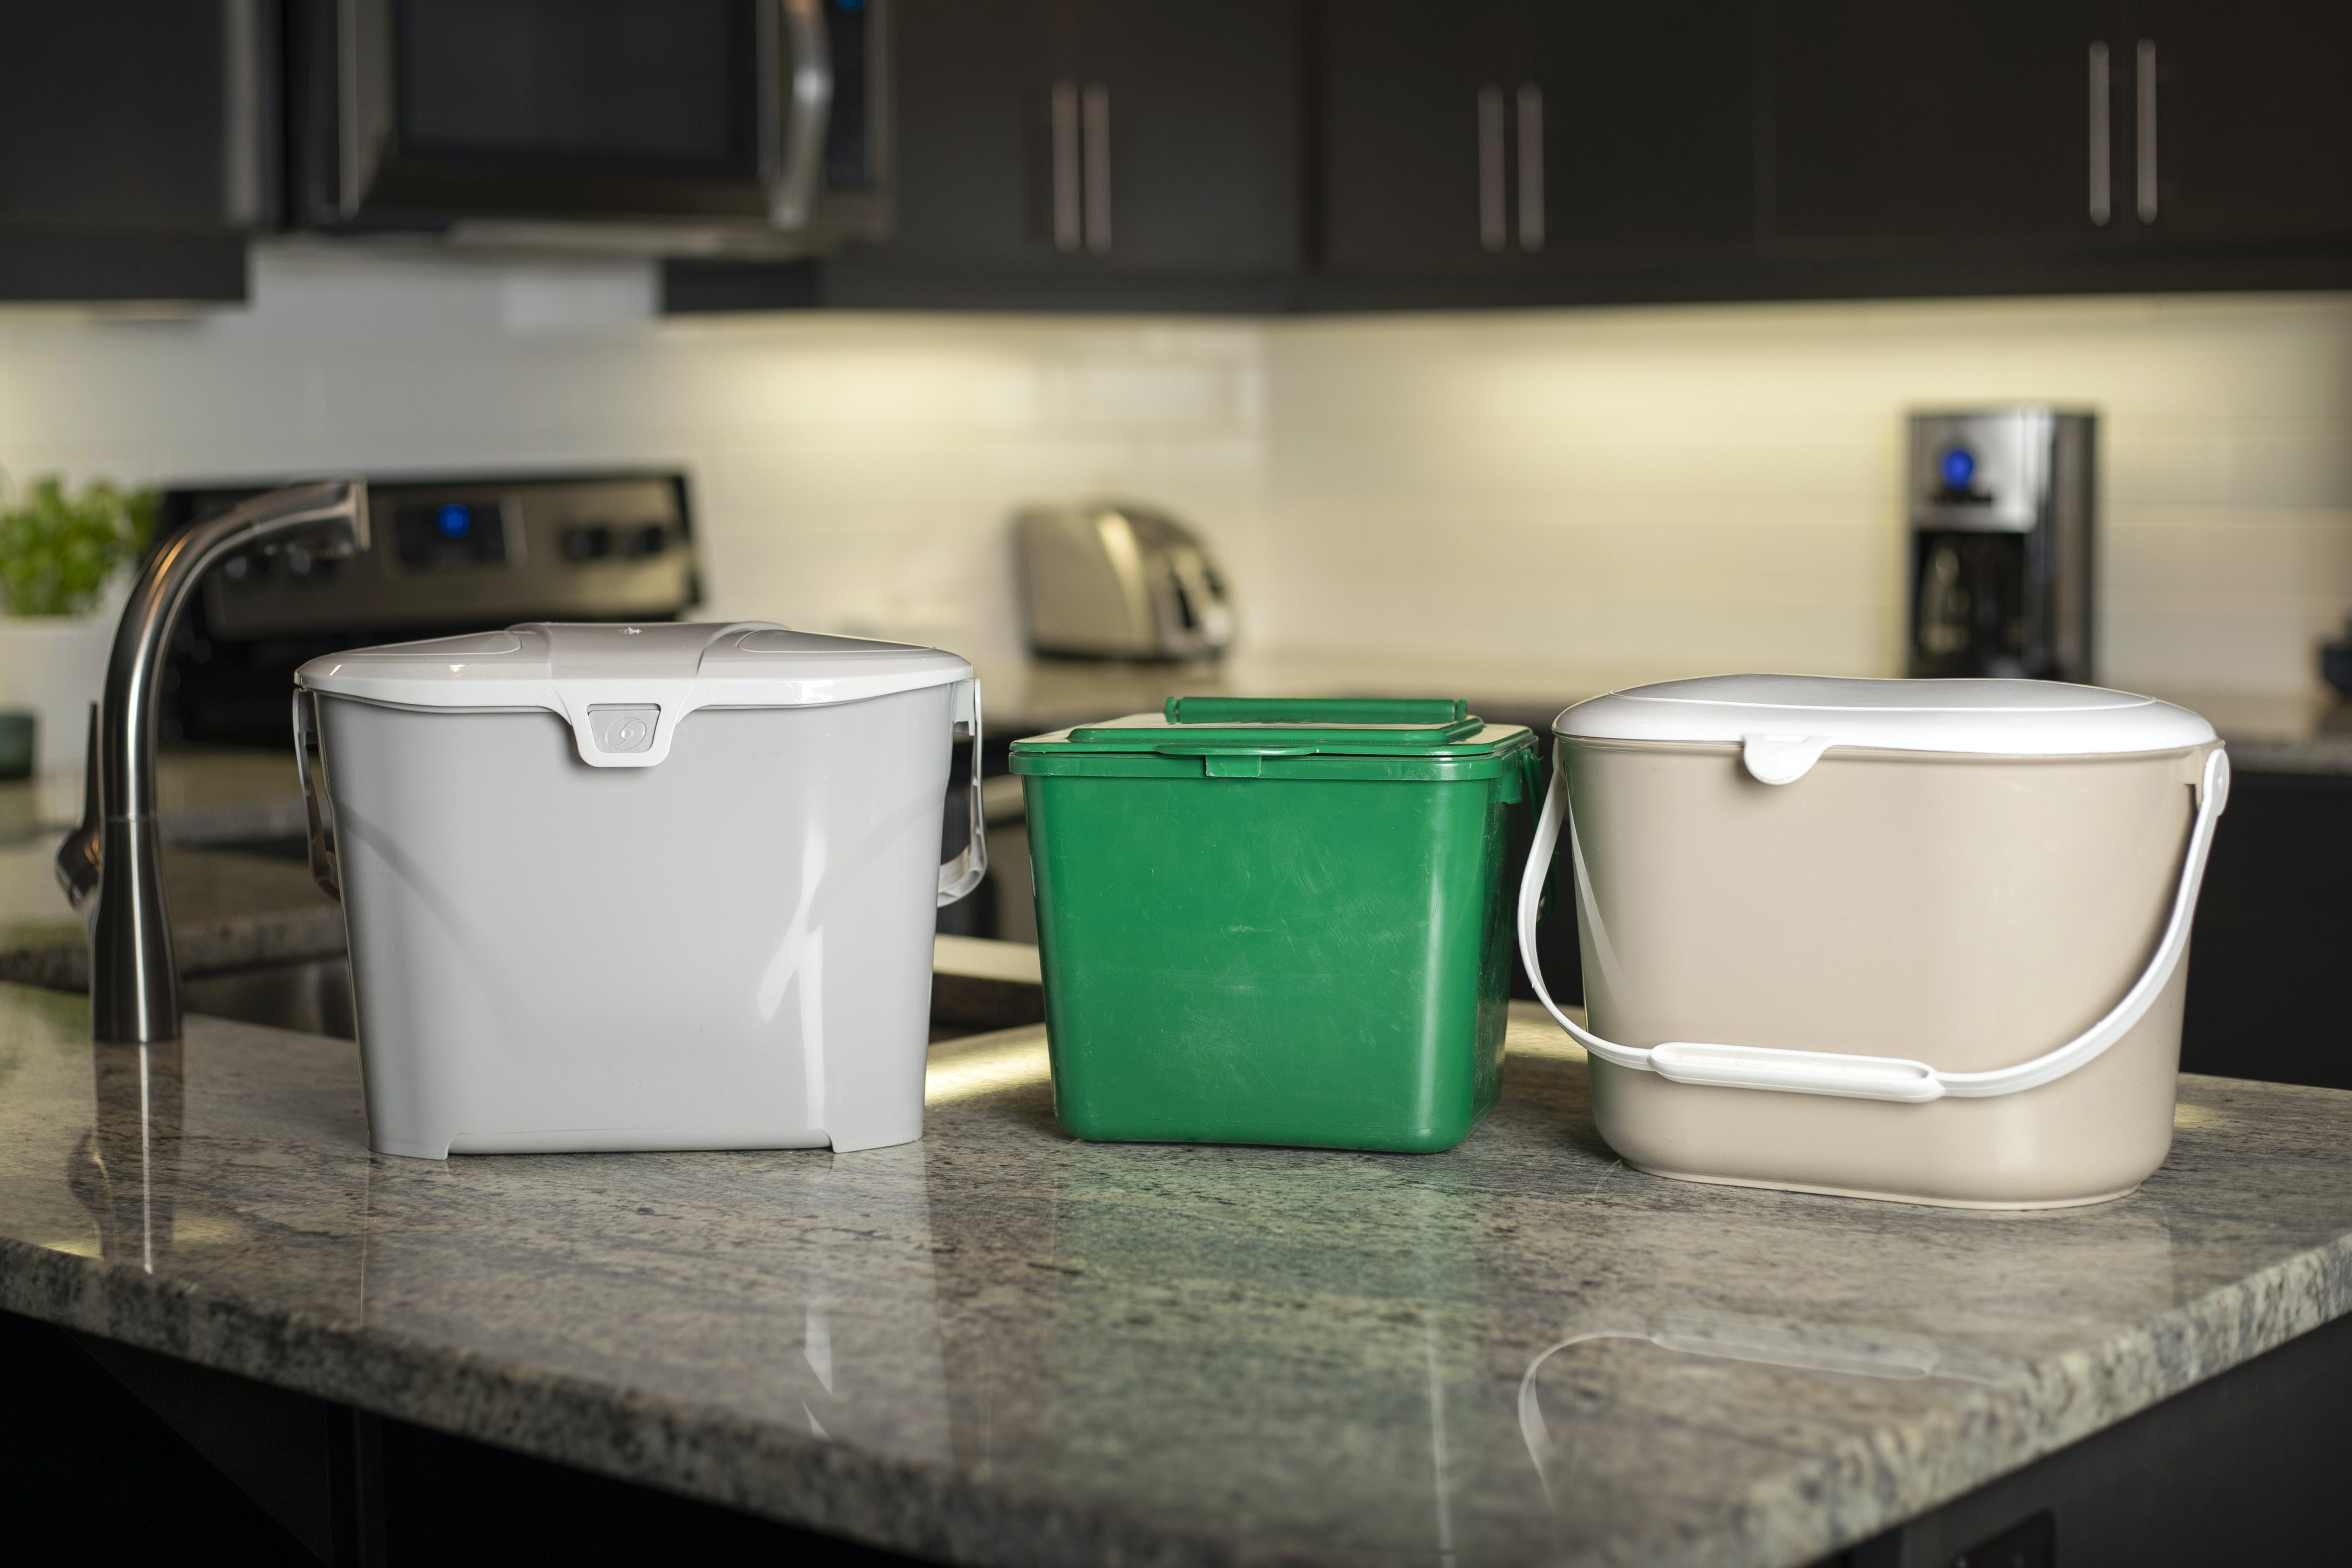 Different sizes of kitchen containers